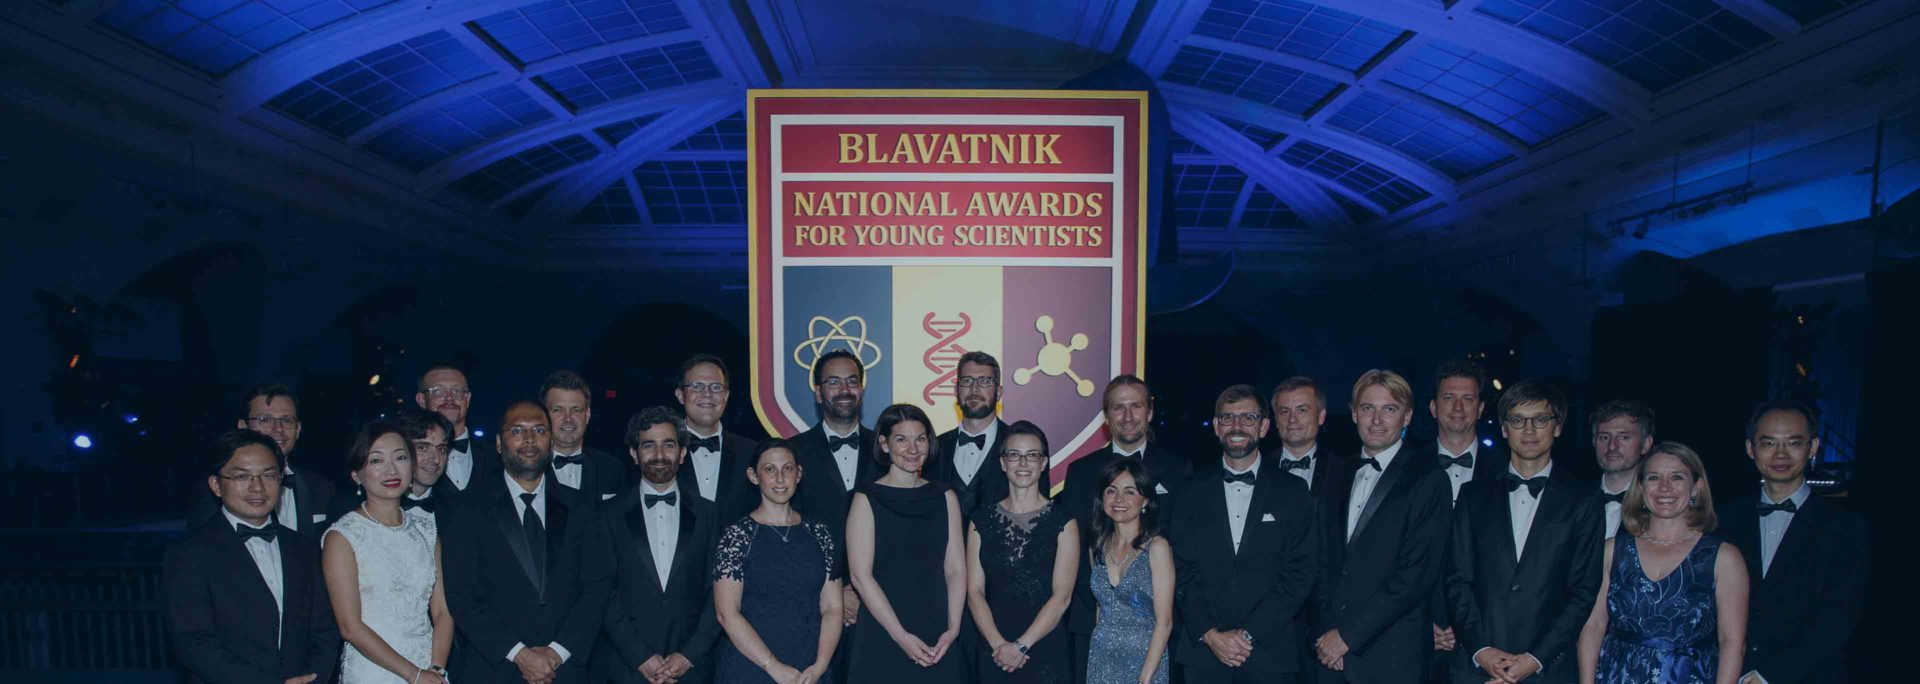 blavatnik-awards-for-young-scientists-homepage-3